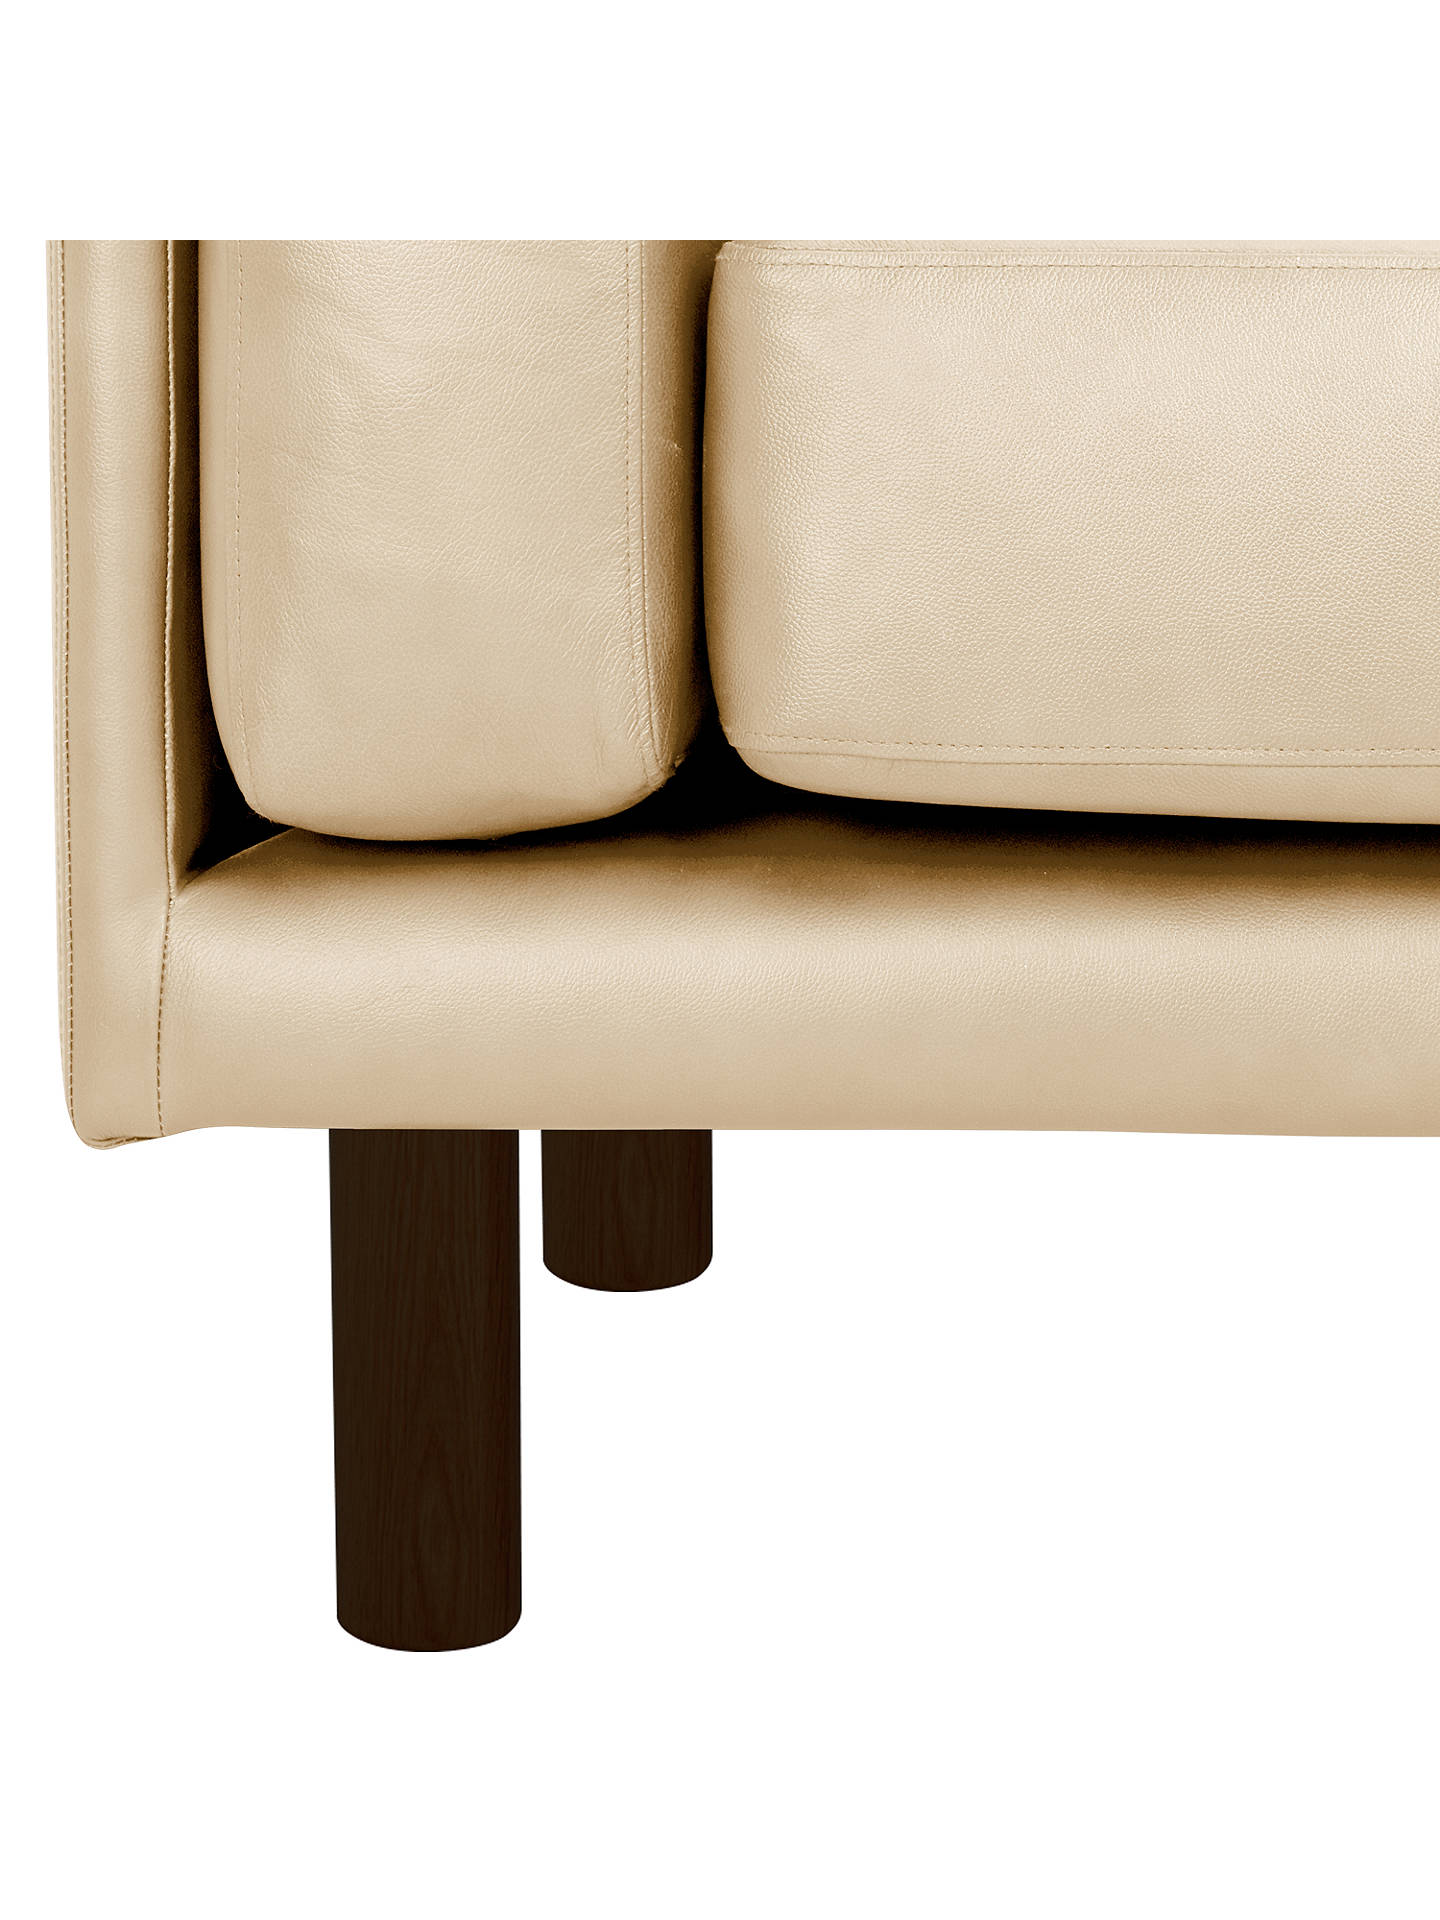 Buy Design Project by John Lewis No.002 Large 3 Seater Leather Sofa, Dark Leg, Contempo Ivory Online at johnlewis.com